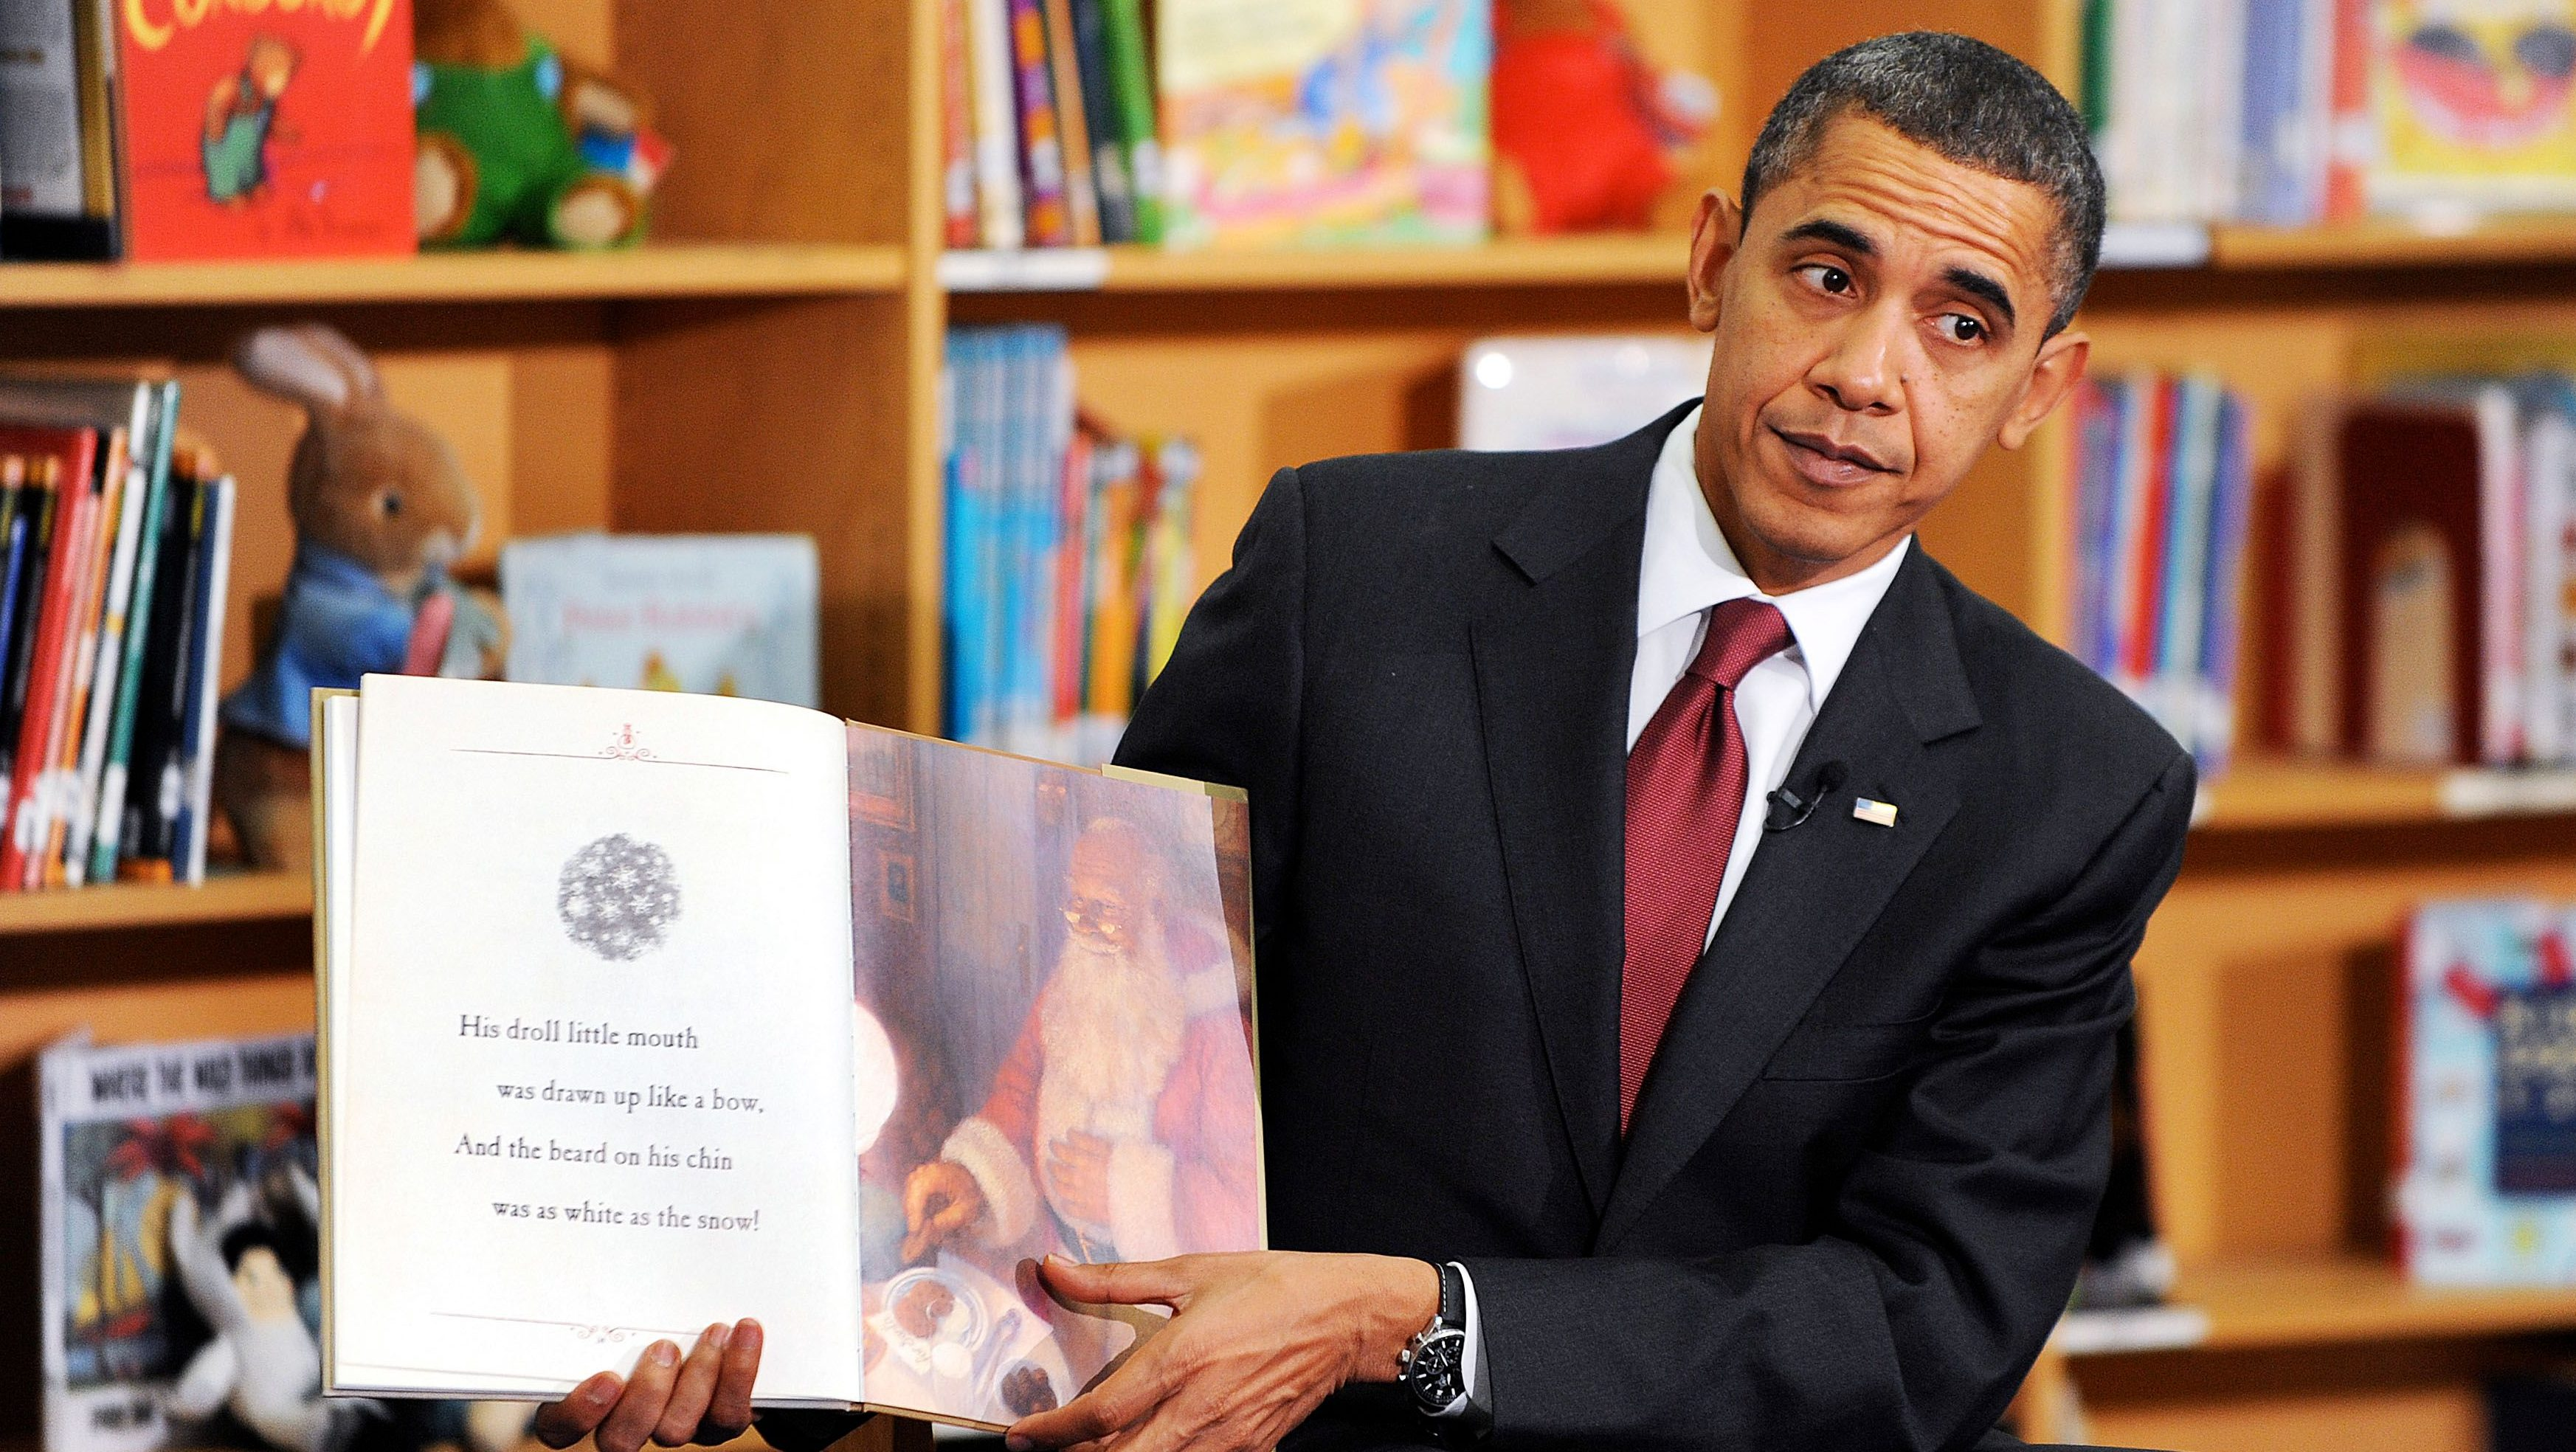 US President Barack Obama reads books, including his new book 'Of Thee I Sing' to approximately 90 2nd graders at Long Branch Elementary School in Arlington, Virginia, USA, 17 December 2010.